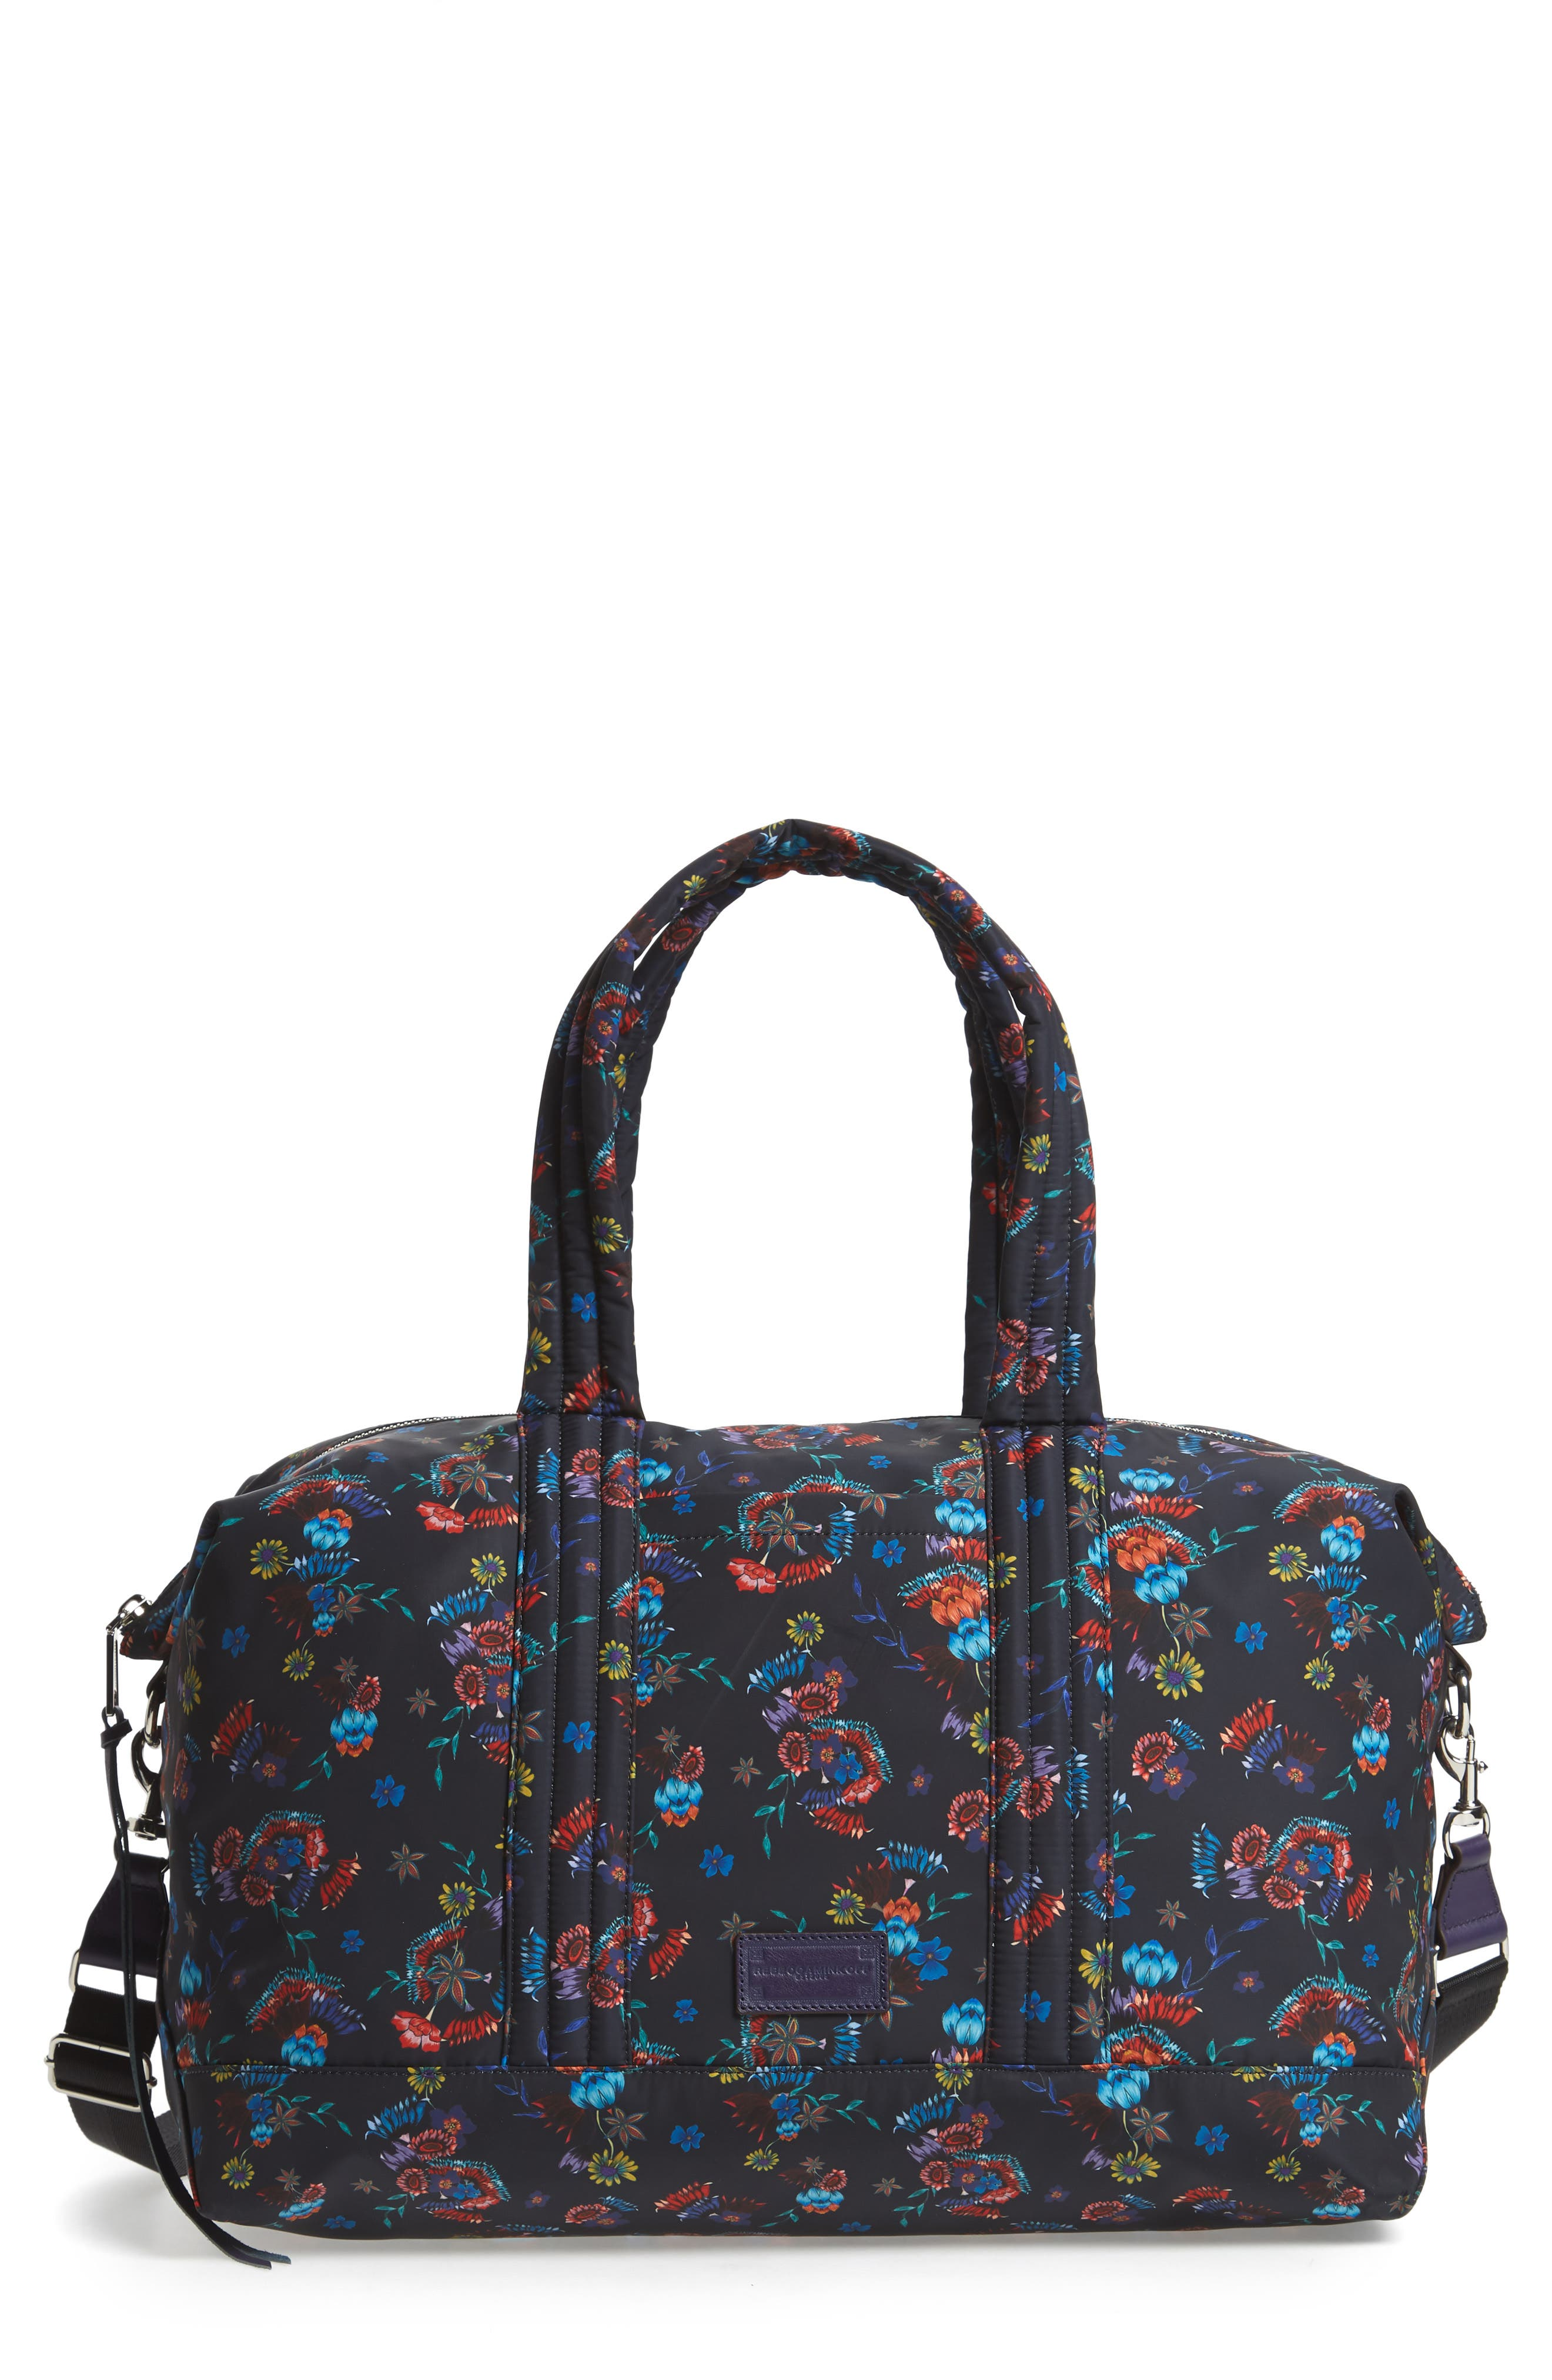 Weekend Nylon Duffel Bag,                             Main thumbnail 1, color,                             Floral Blue